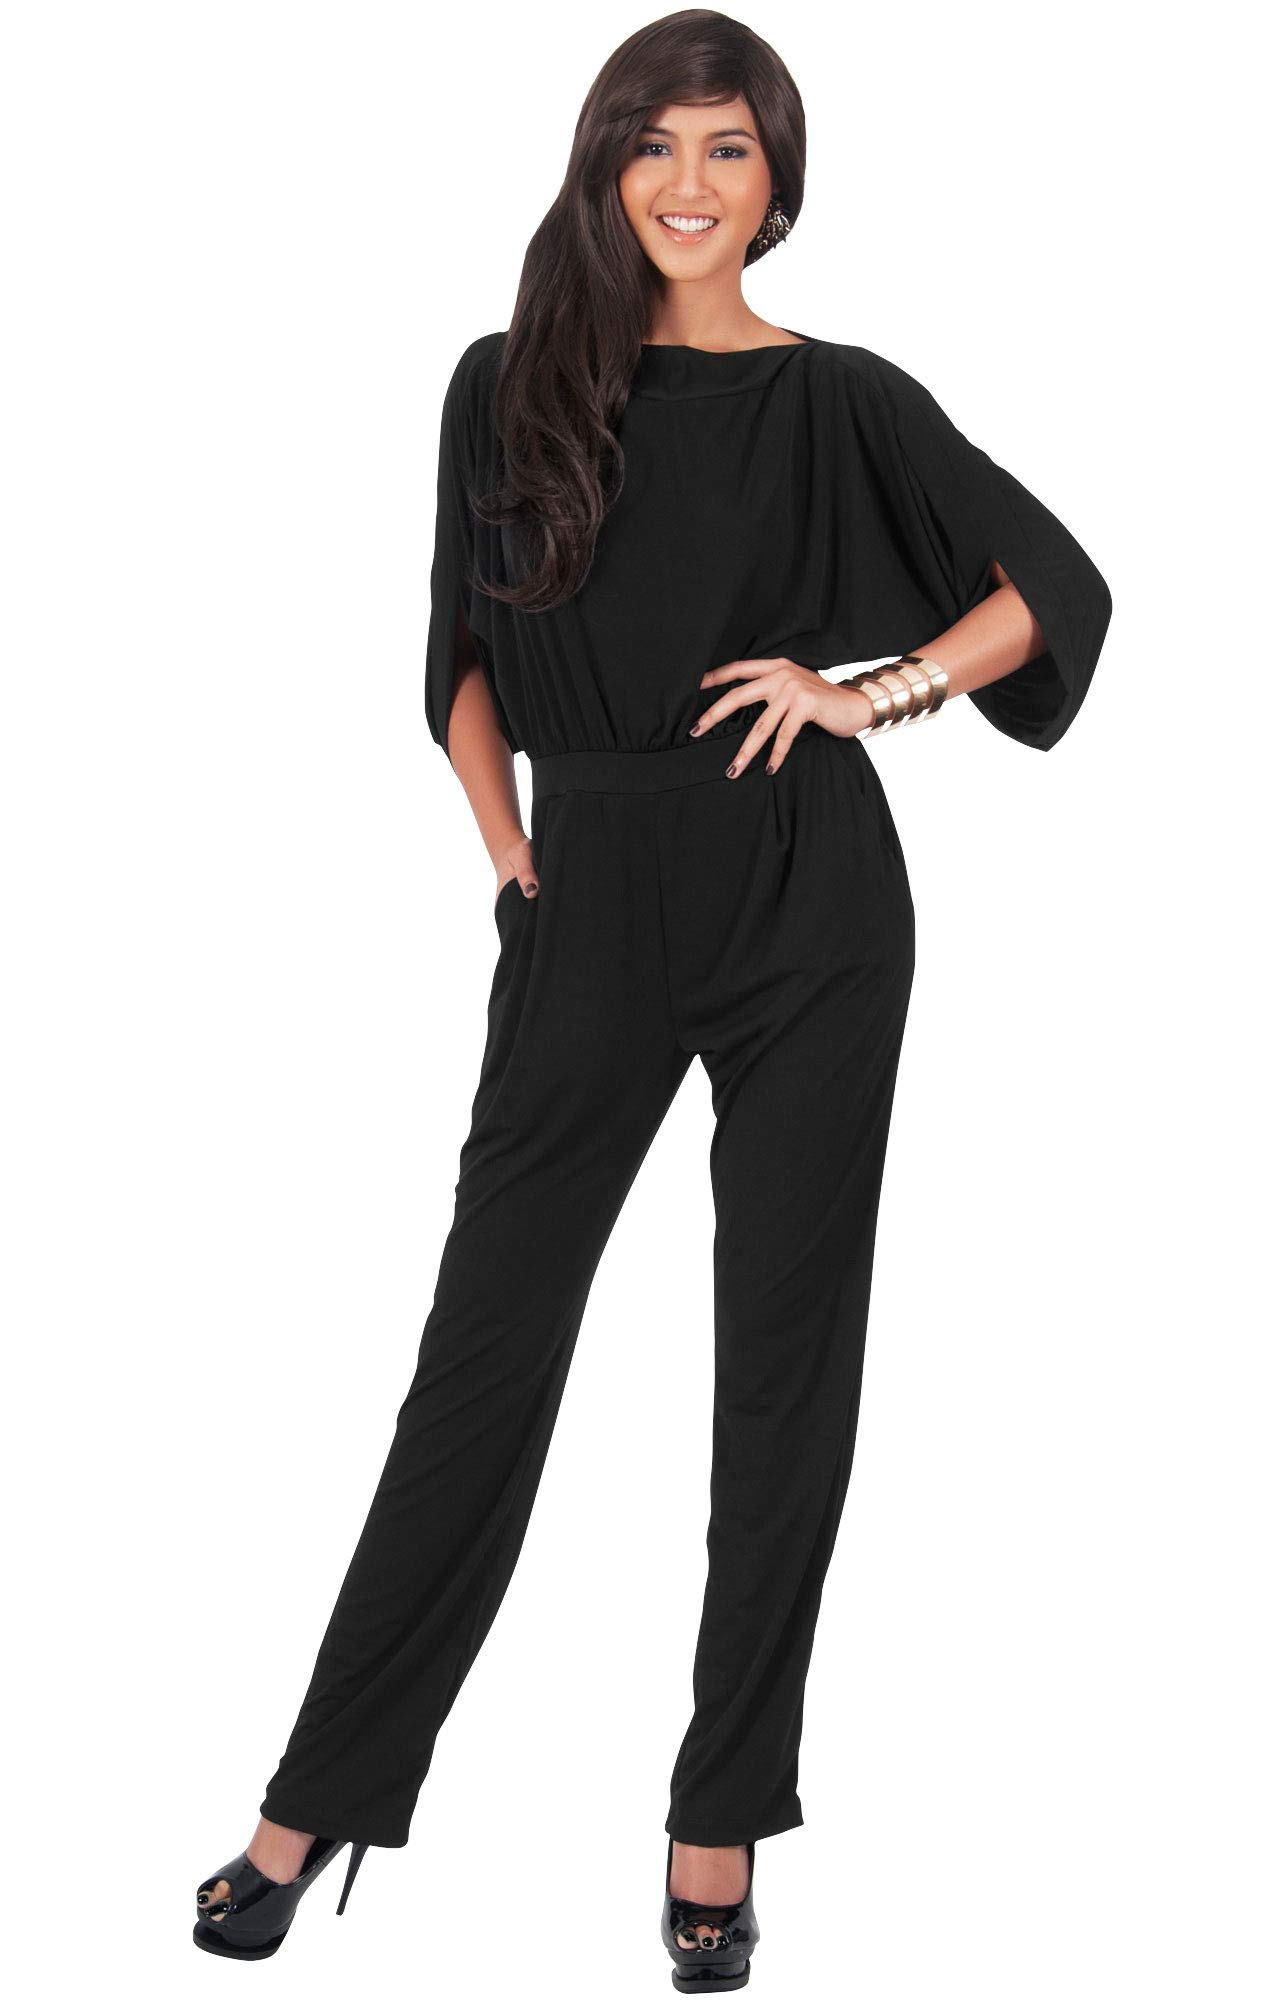 KOH KOH Plus Size Womens Short Sleeve Sexy Formal Cocktail Casual Cute Long Pants One Piece Fall Pockets Dressy Jumpsuit Romper Long Leg Pant Suit Suits Outfit Playsuit, Black 2XL 18-20